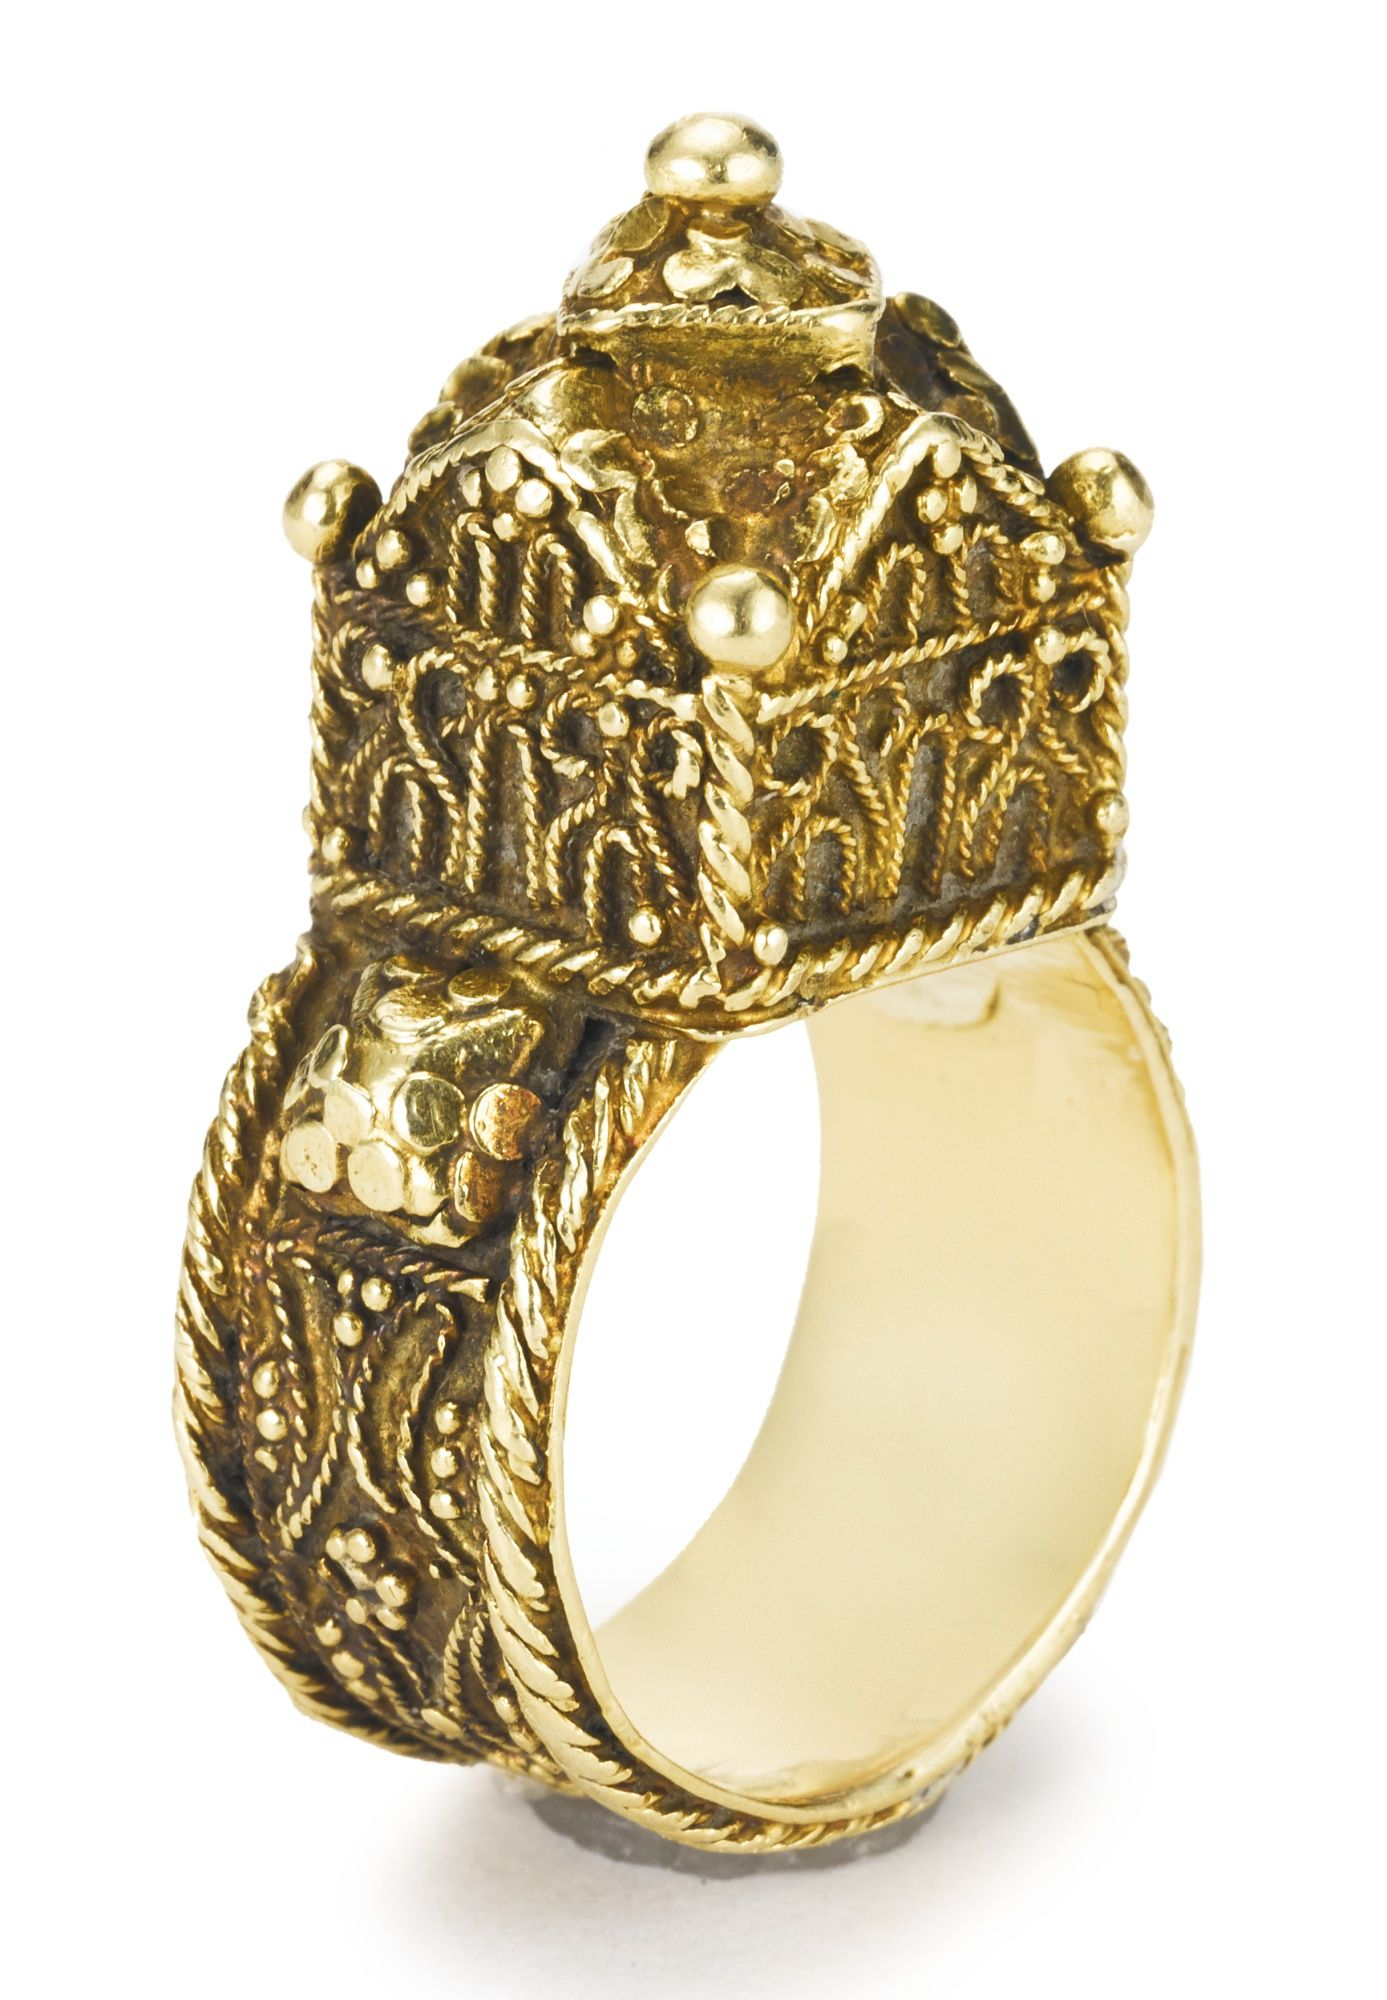 A gold granulation and filigree wire work wedding ring